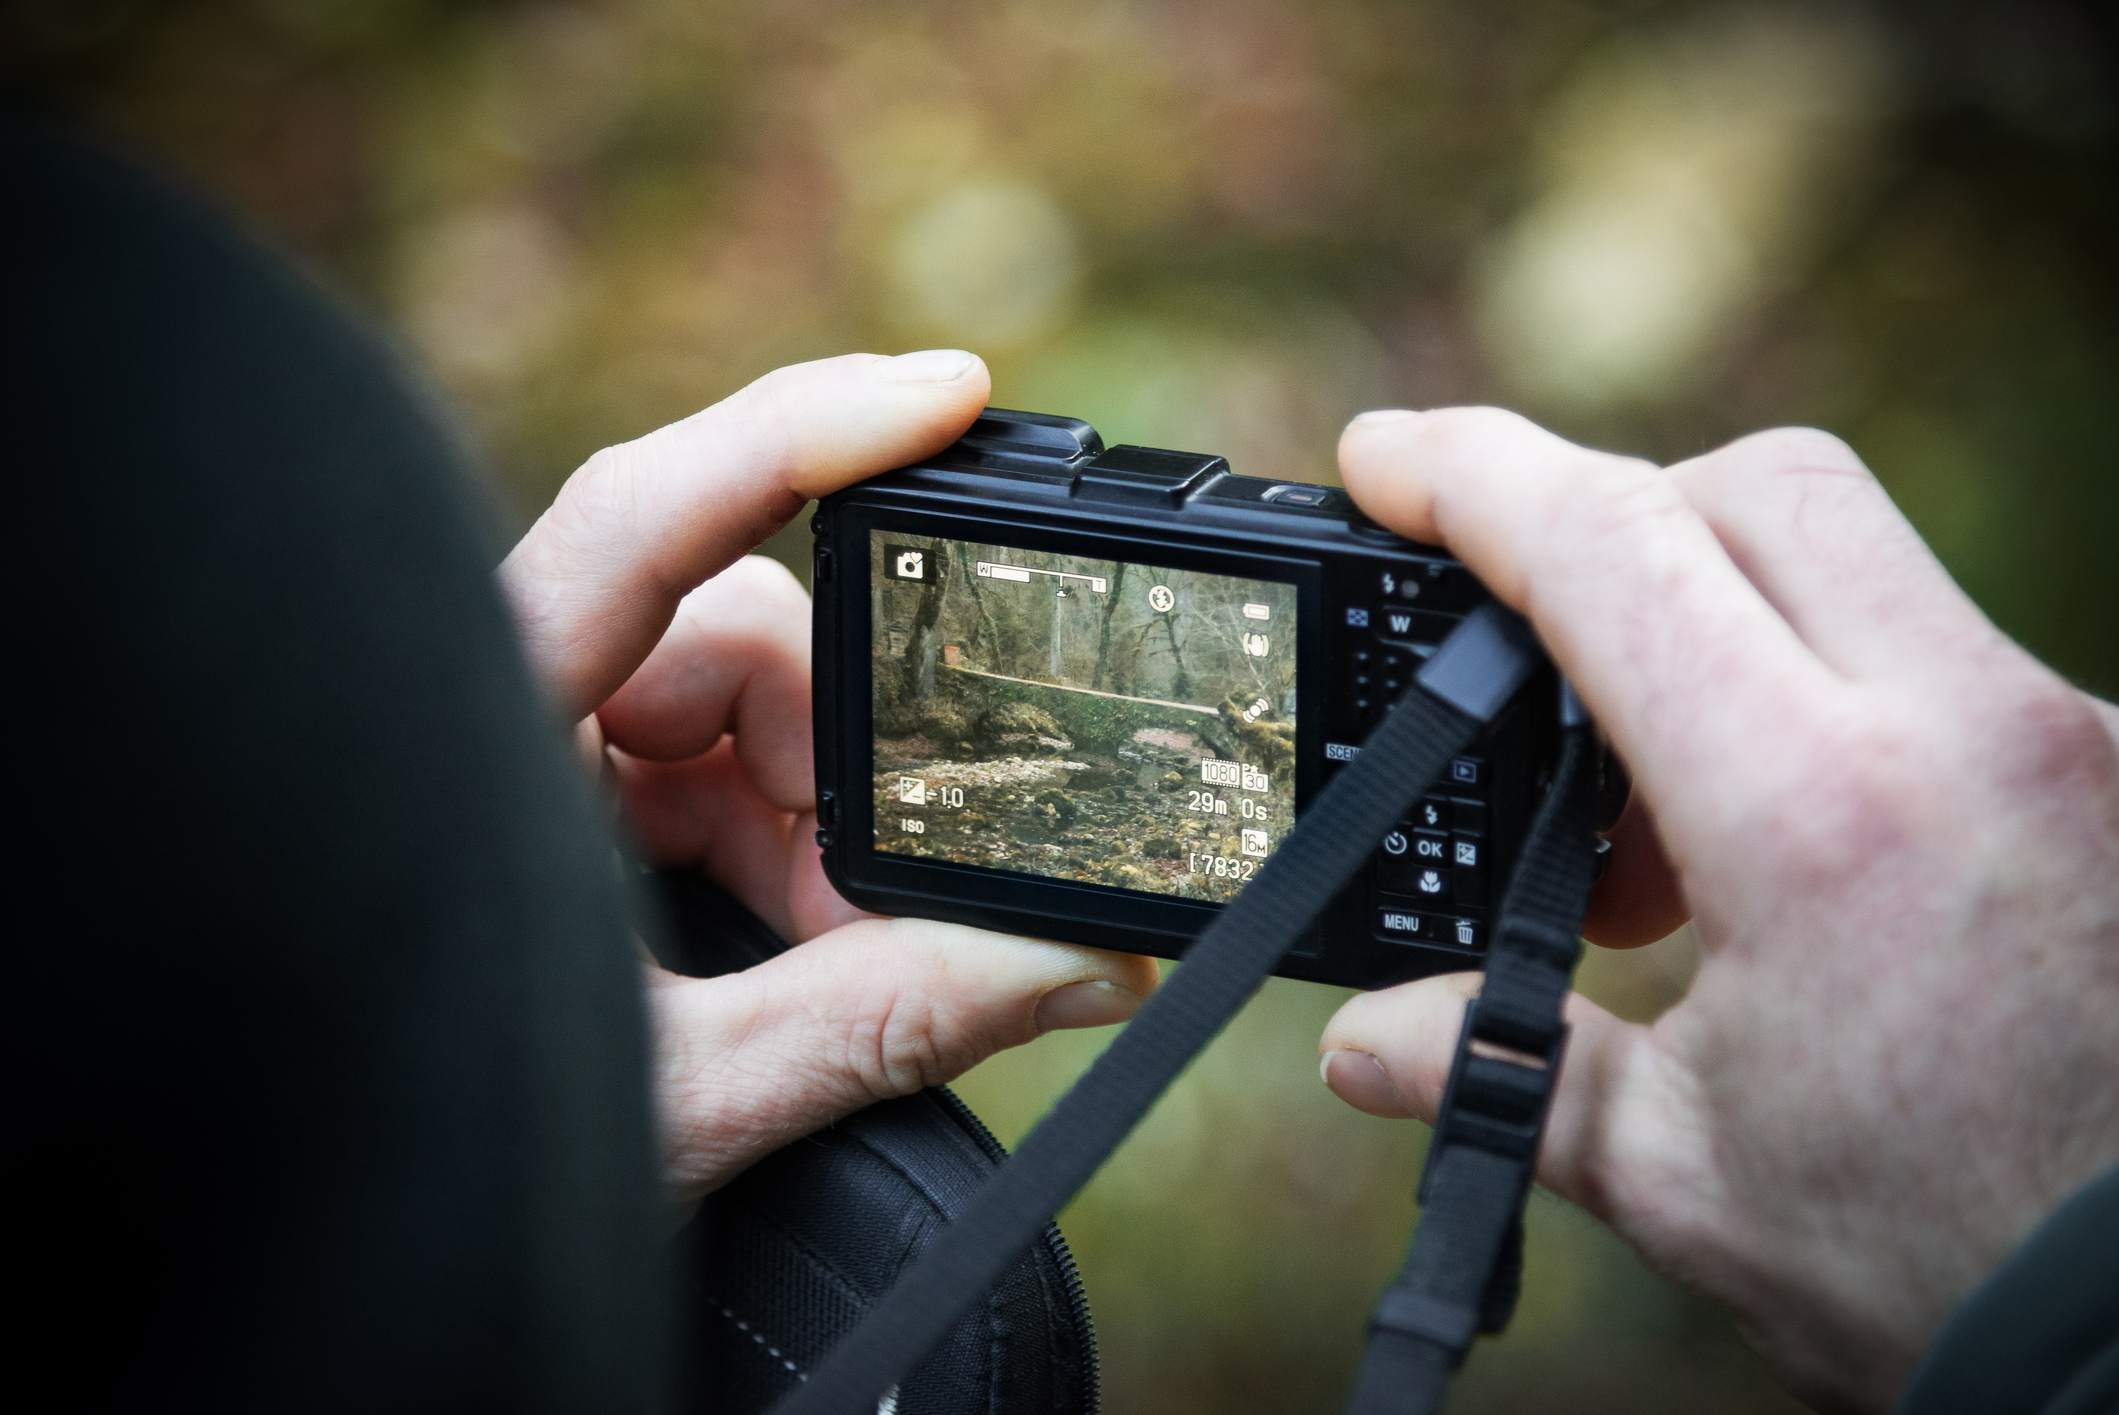 A man using a small point and shoot camera.